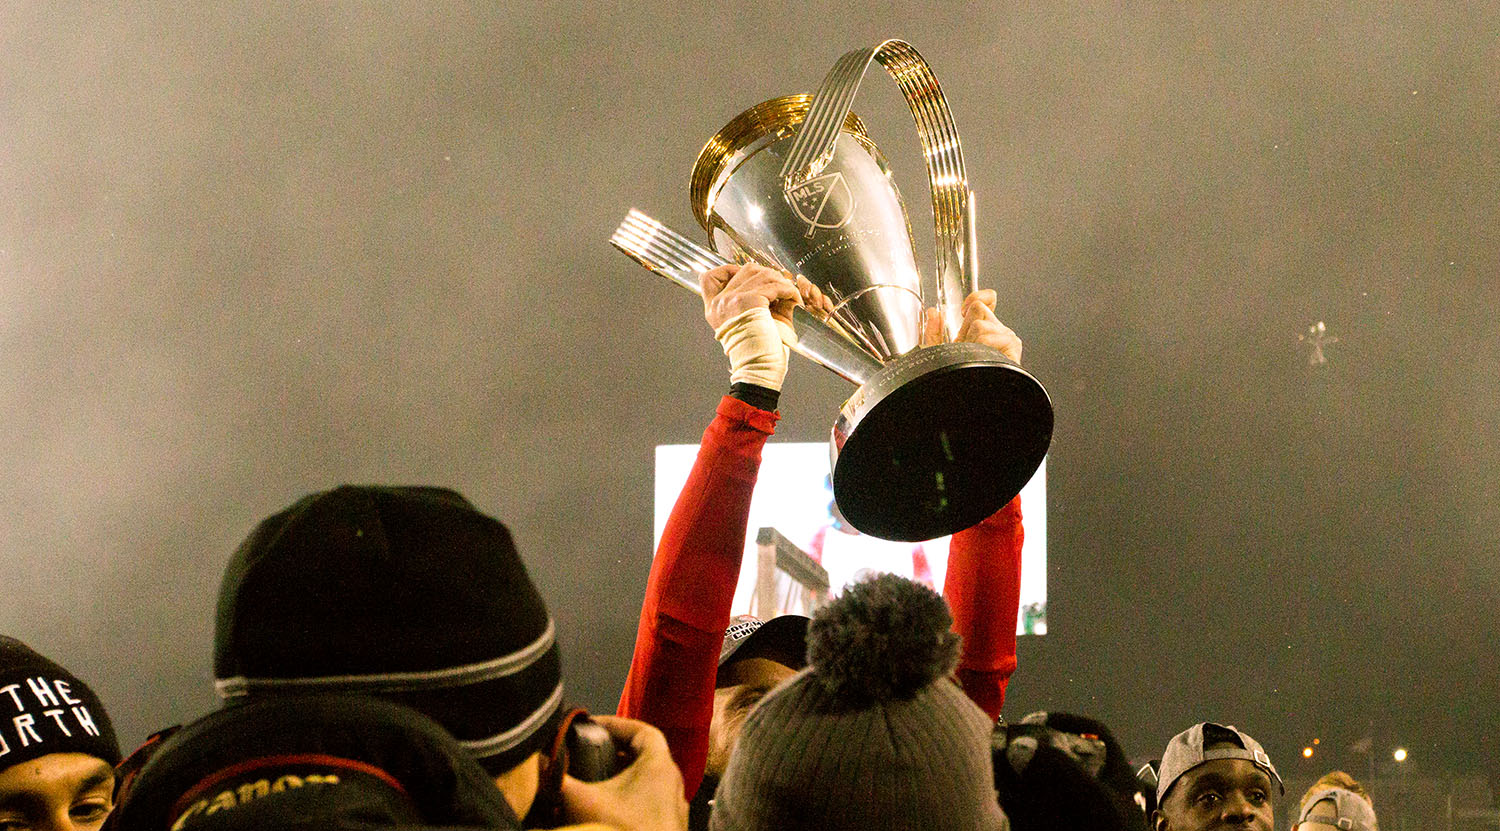 The trophy is lifted in the south end to celebrate the win for Toronto FC's 2017 MLS Cup win.Image by Dennis Marciniak of denMAR Media.